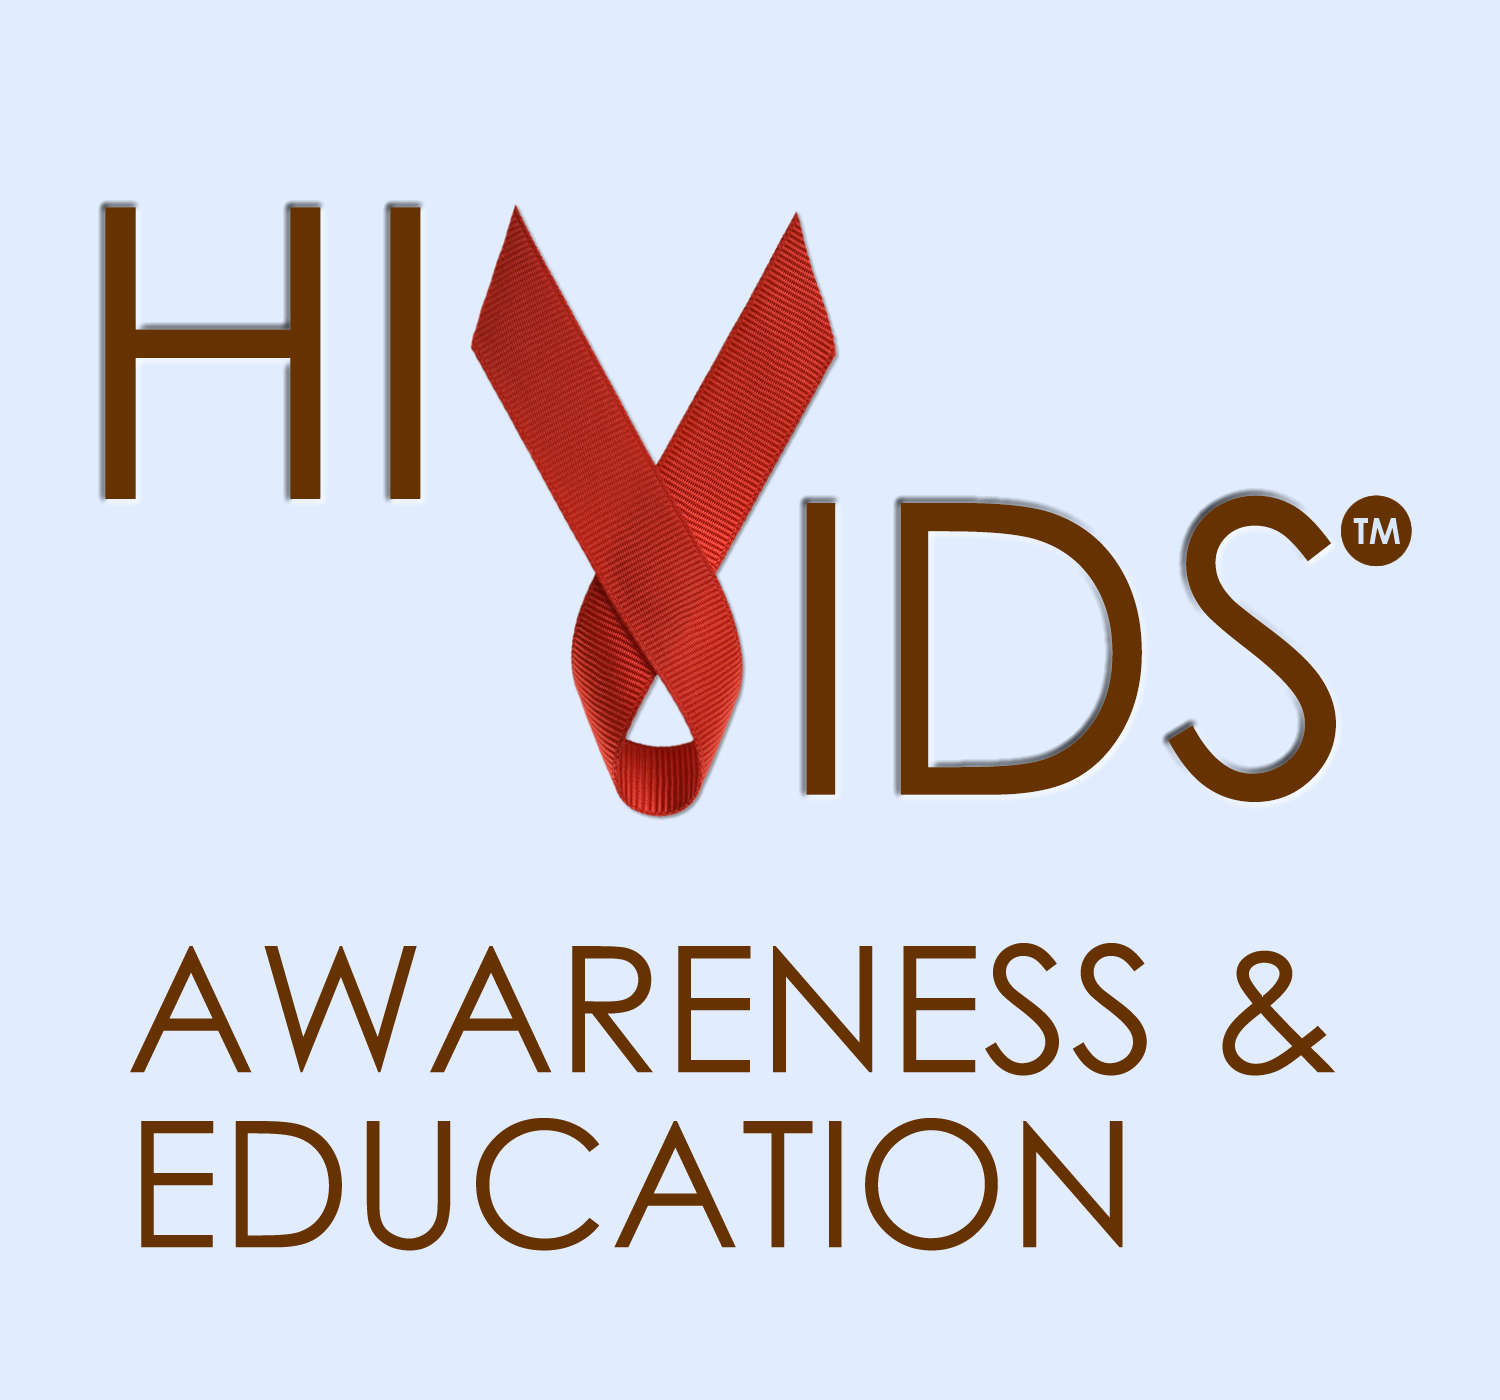 This image is related to AIDS Education - Source Wikipedia